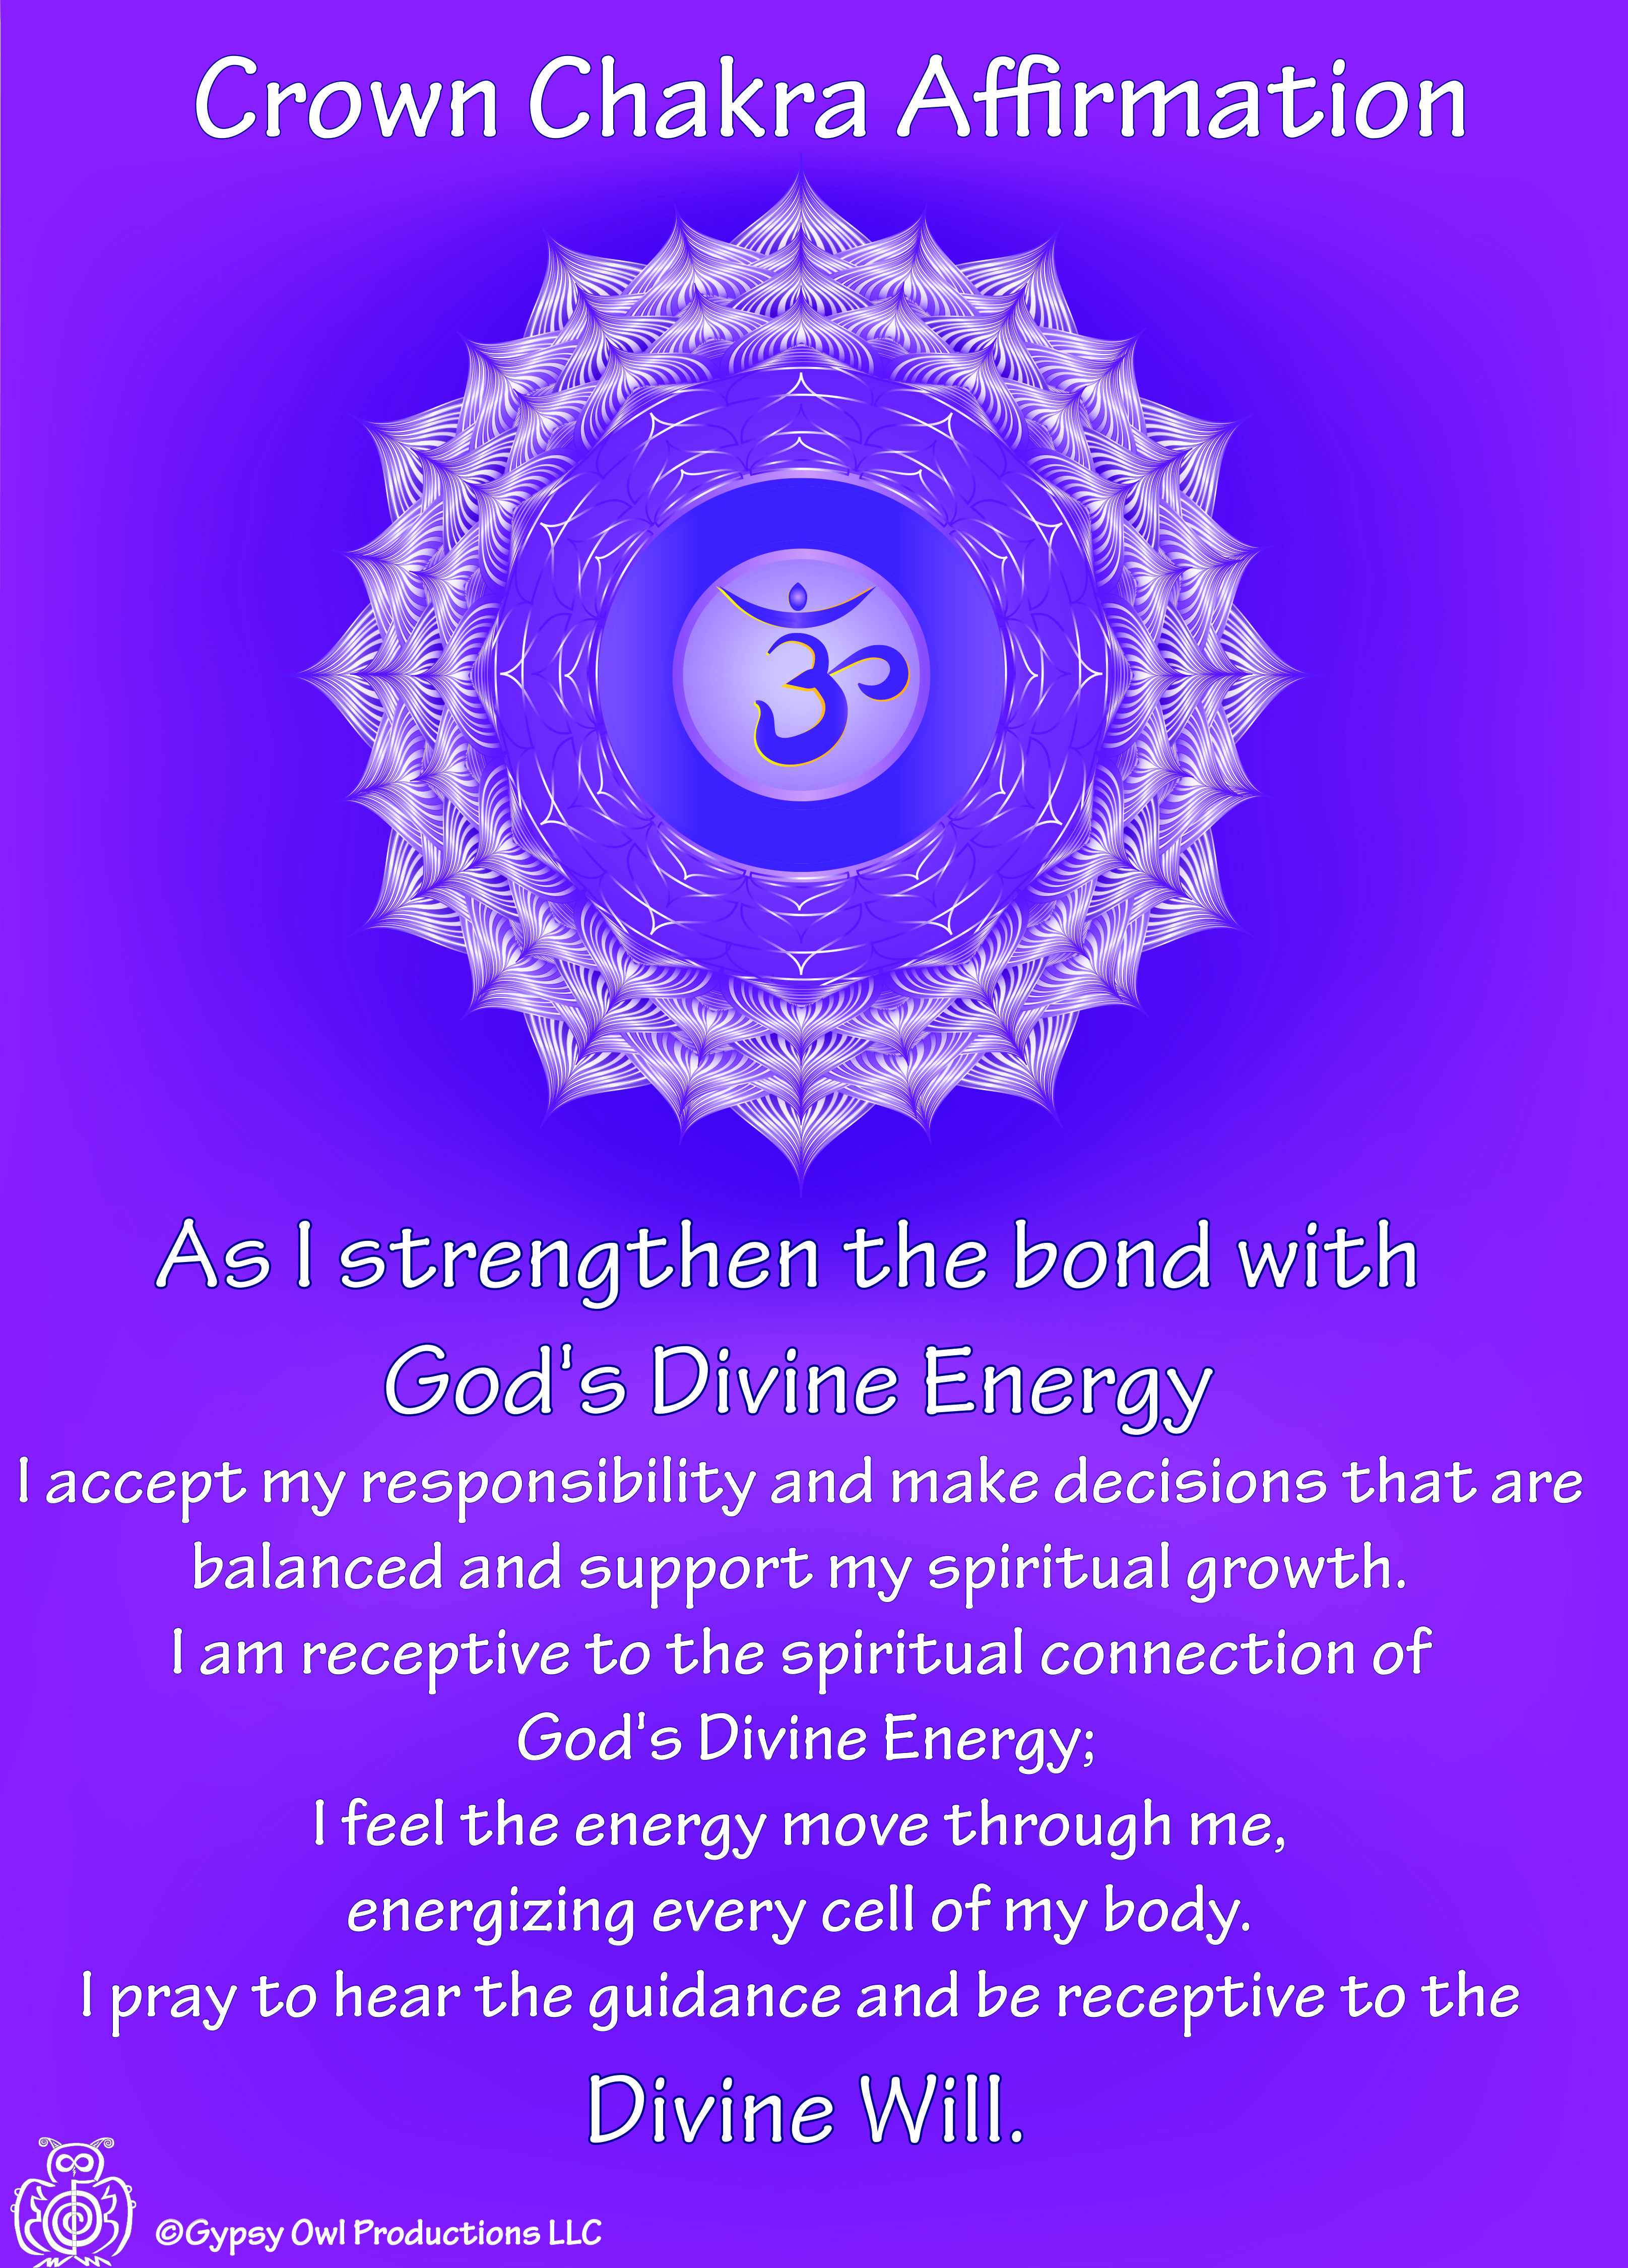 Pin by Gypsy Owl Productions, LLC on Chakra Affirmation